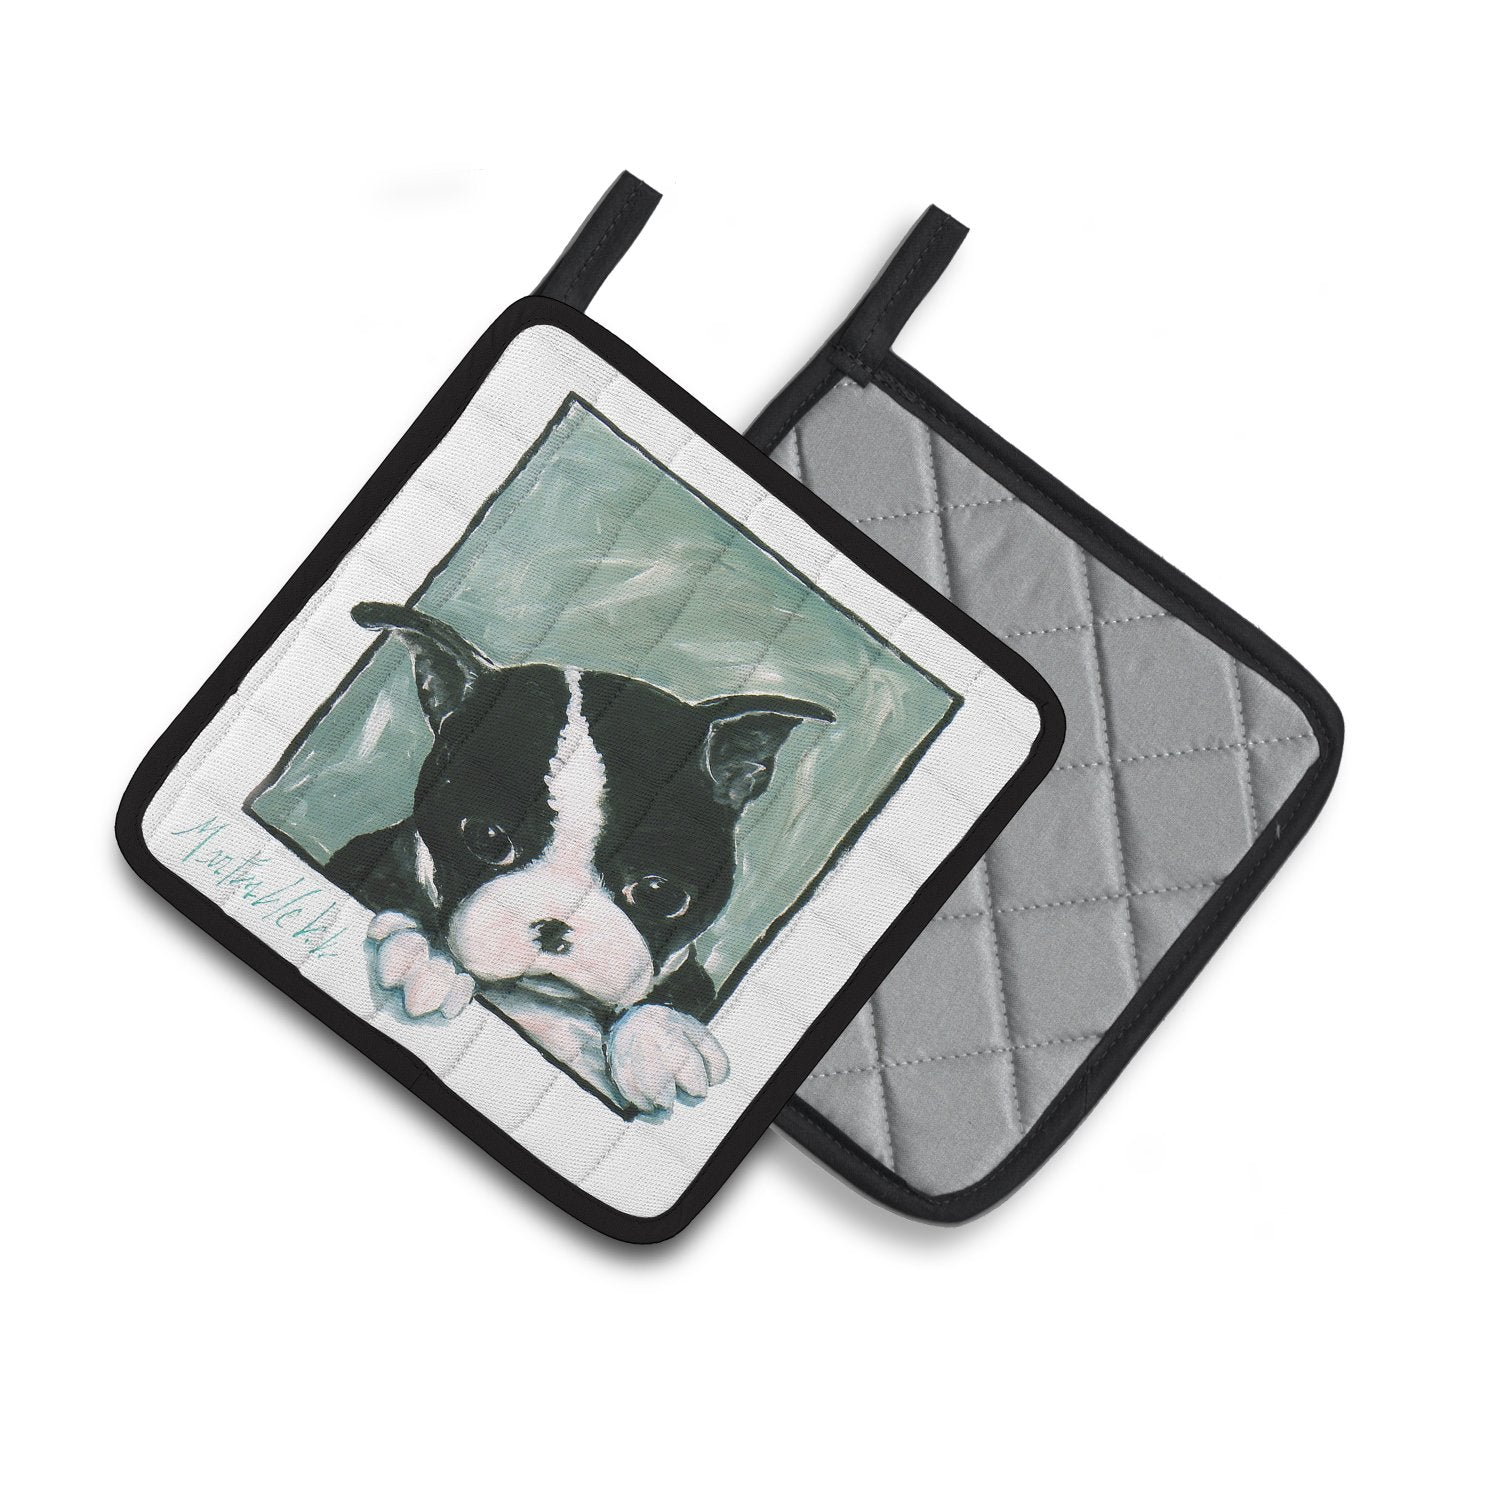 Boston Terrier Don't Leave Me Pair of Pot Holders MW1313PTHD by Caroline's Treasures